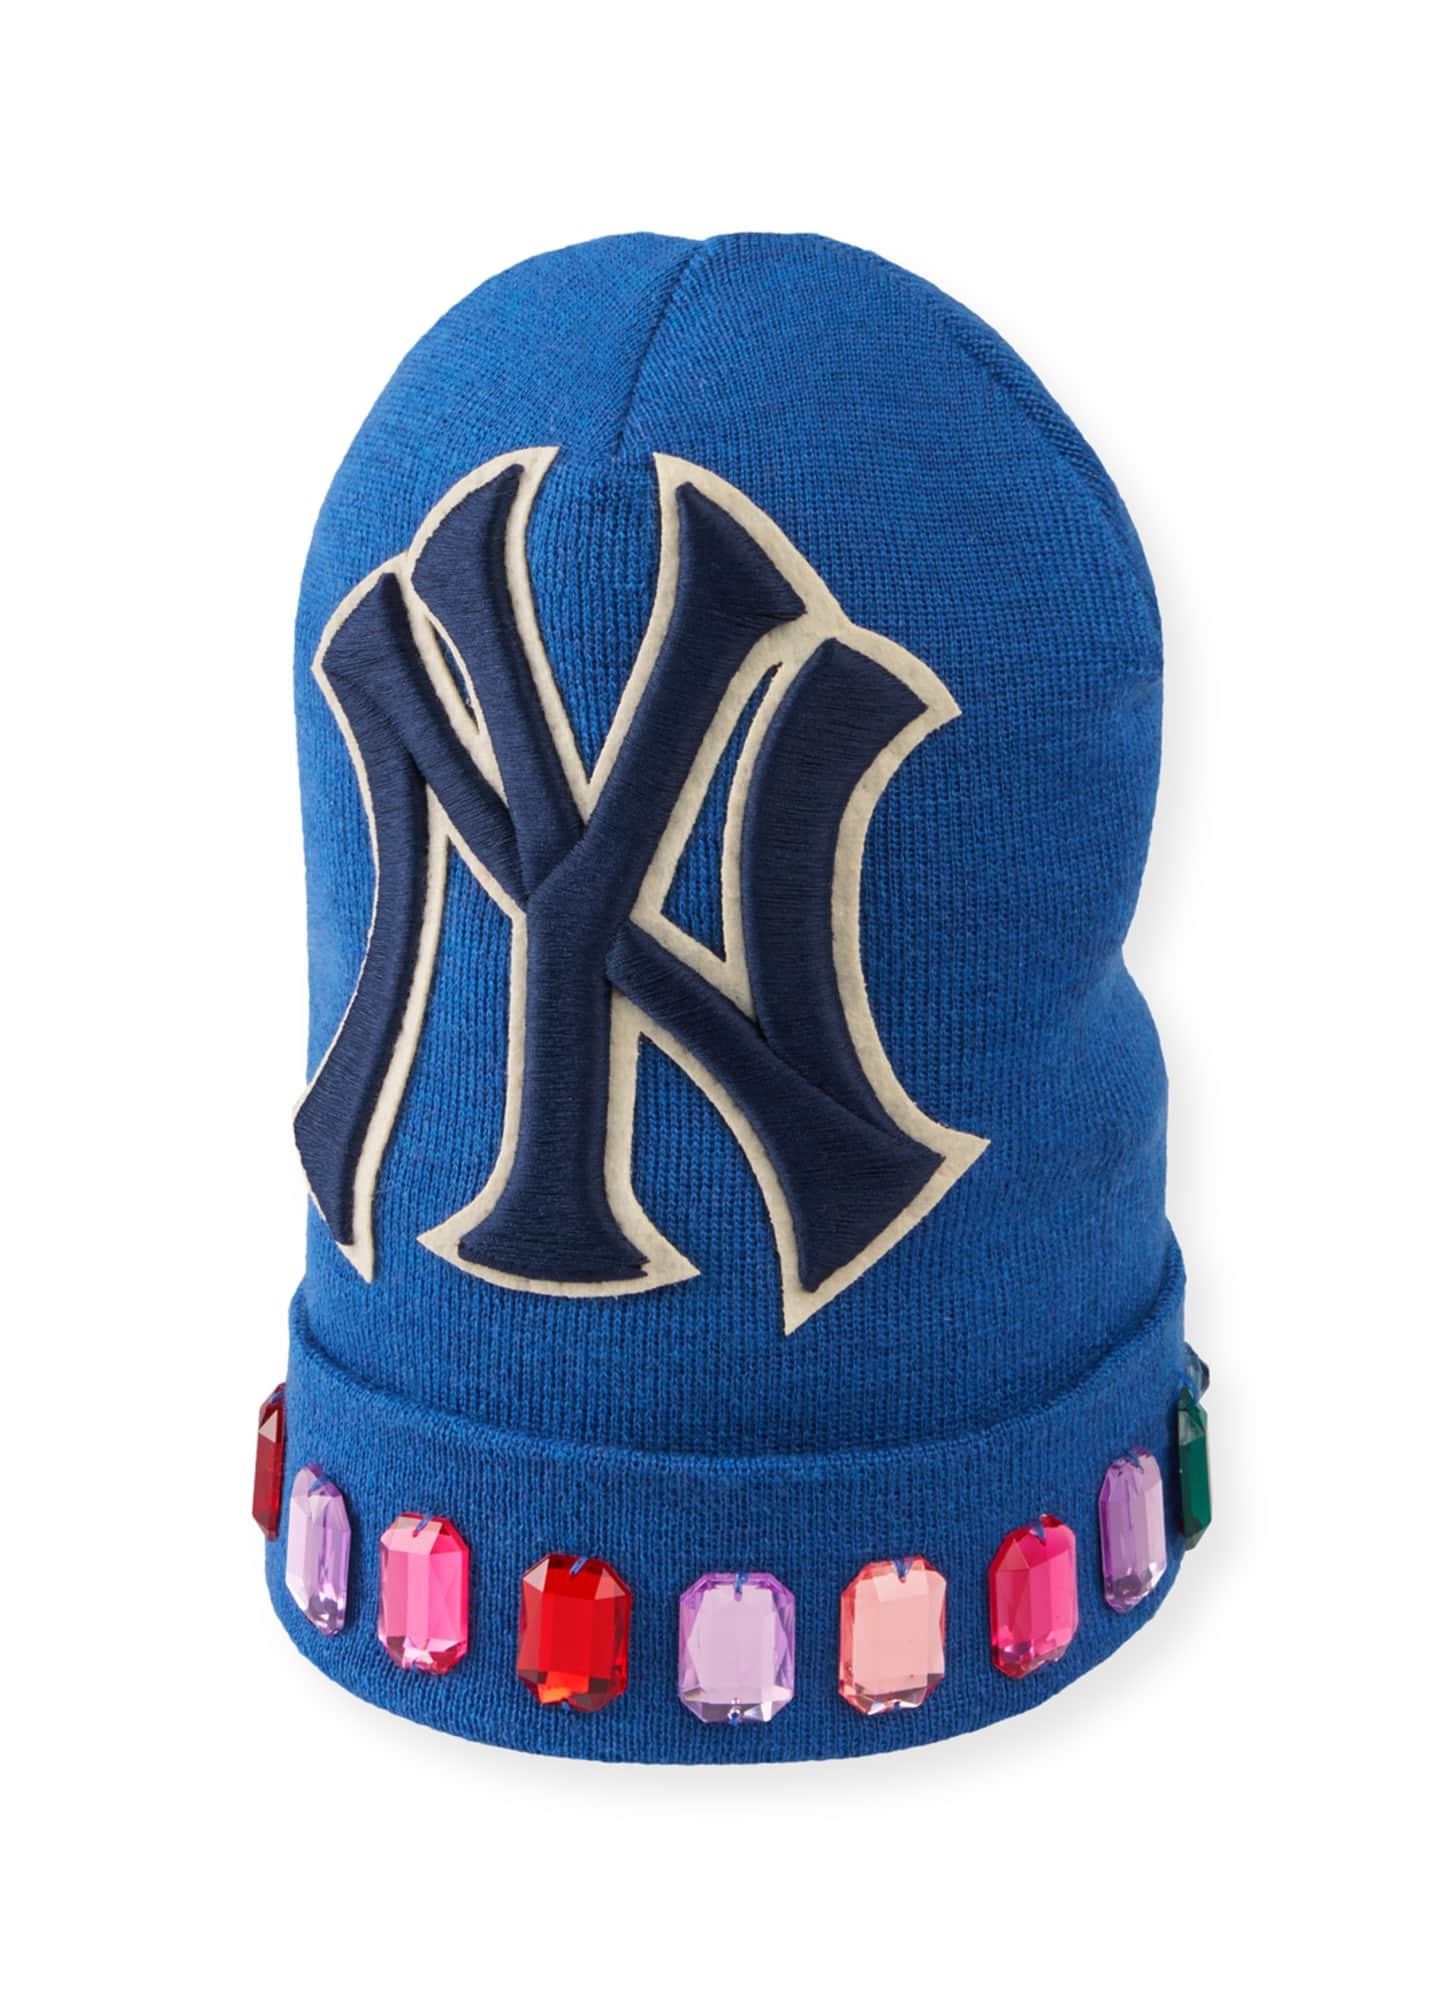 Gucci Men's Jewel-Trim New York Yankees-Applique Beanie Hat